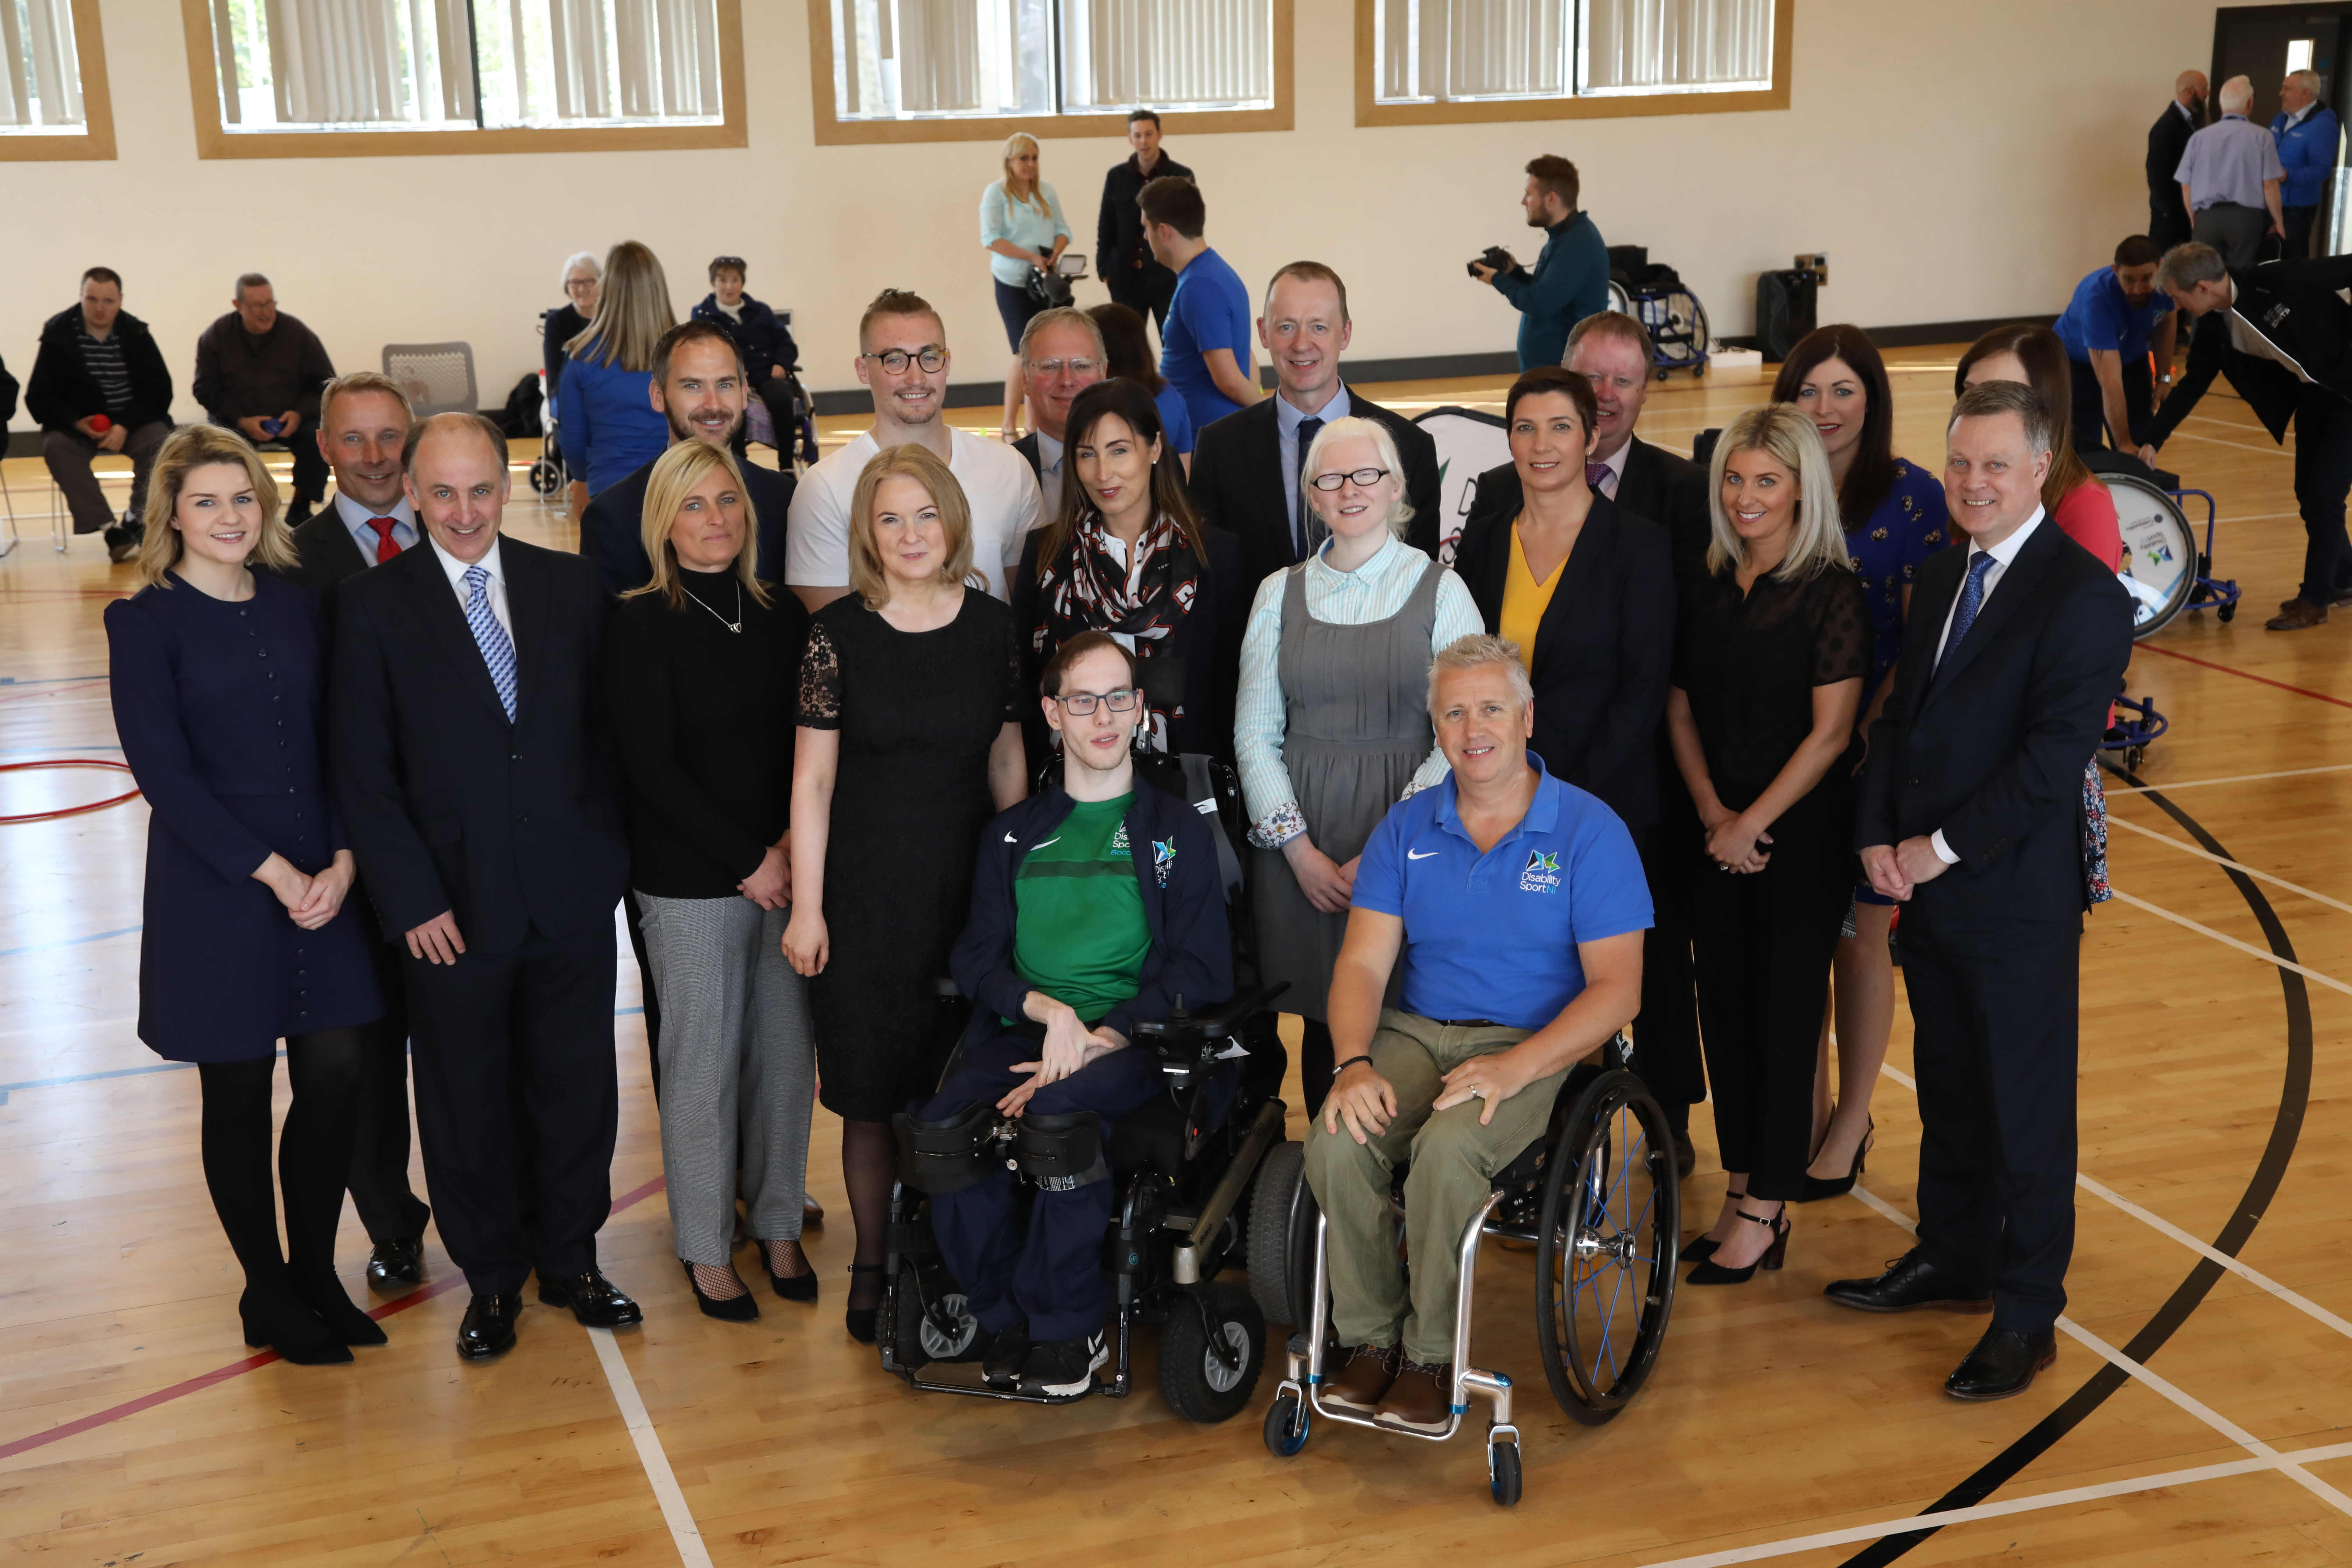 A group image of the Progressive Branch Managers and Disability Sport NI Managers